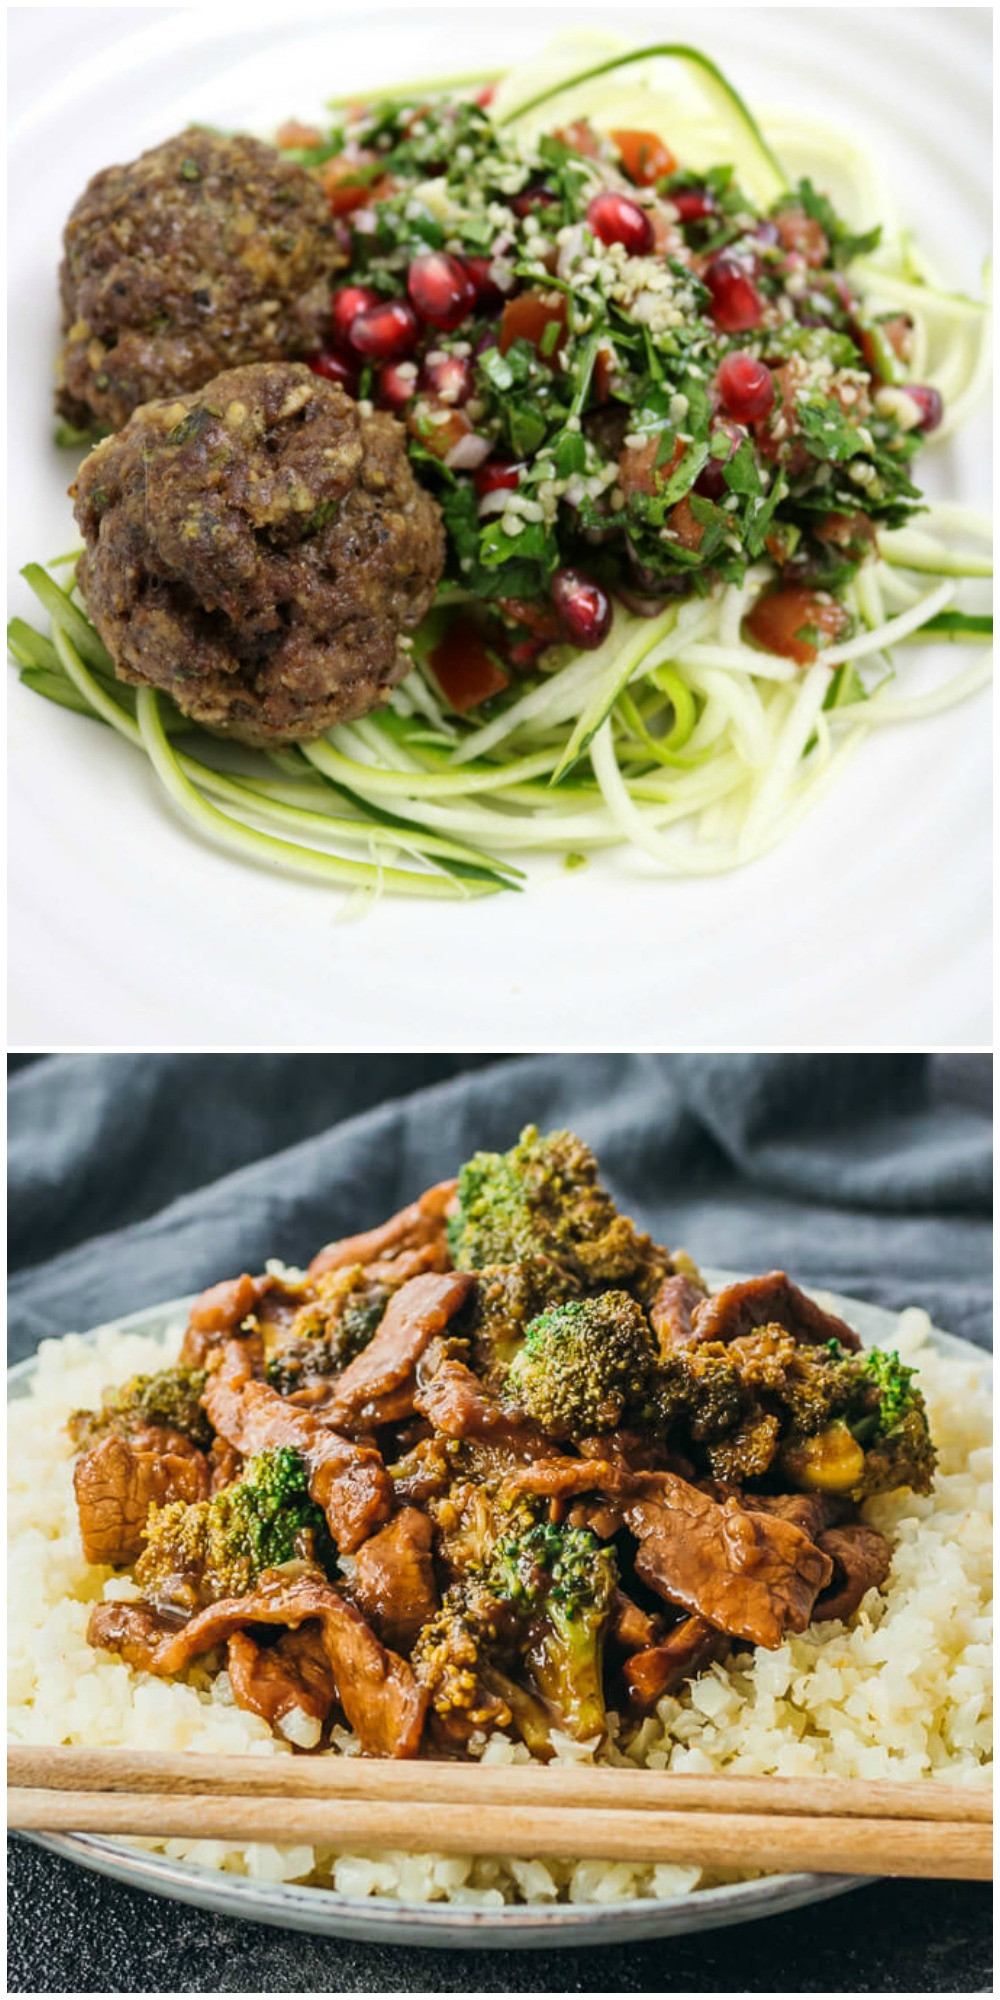 Low Carb Recipes For Dinner  17 Low Carb Dinner Recipes from MamaMommyMom